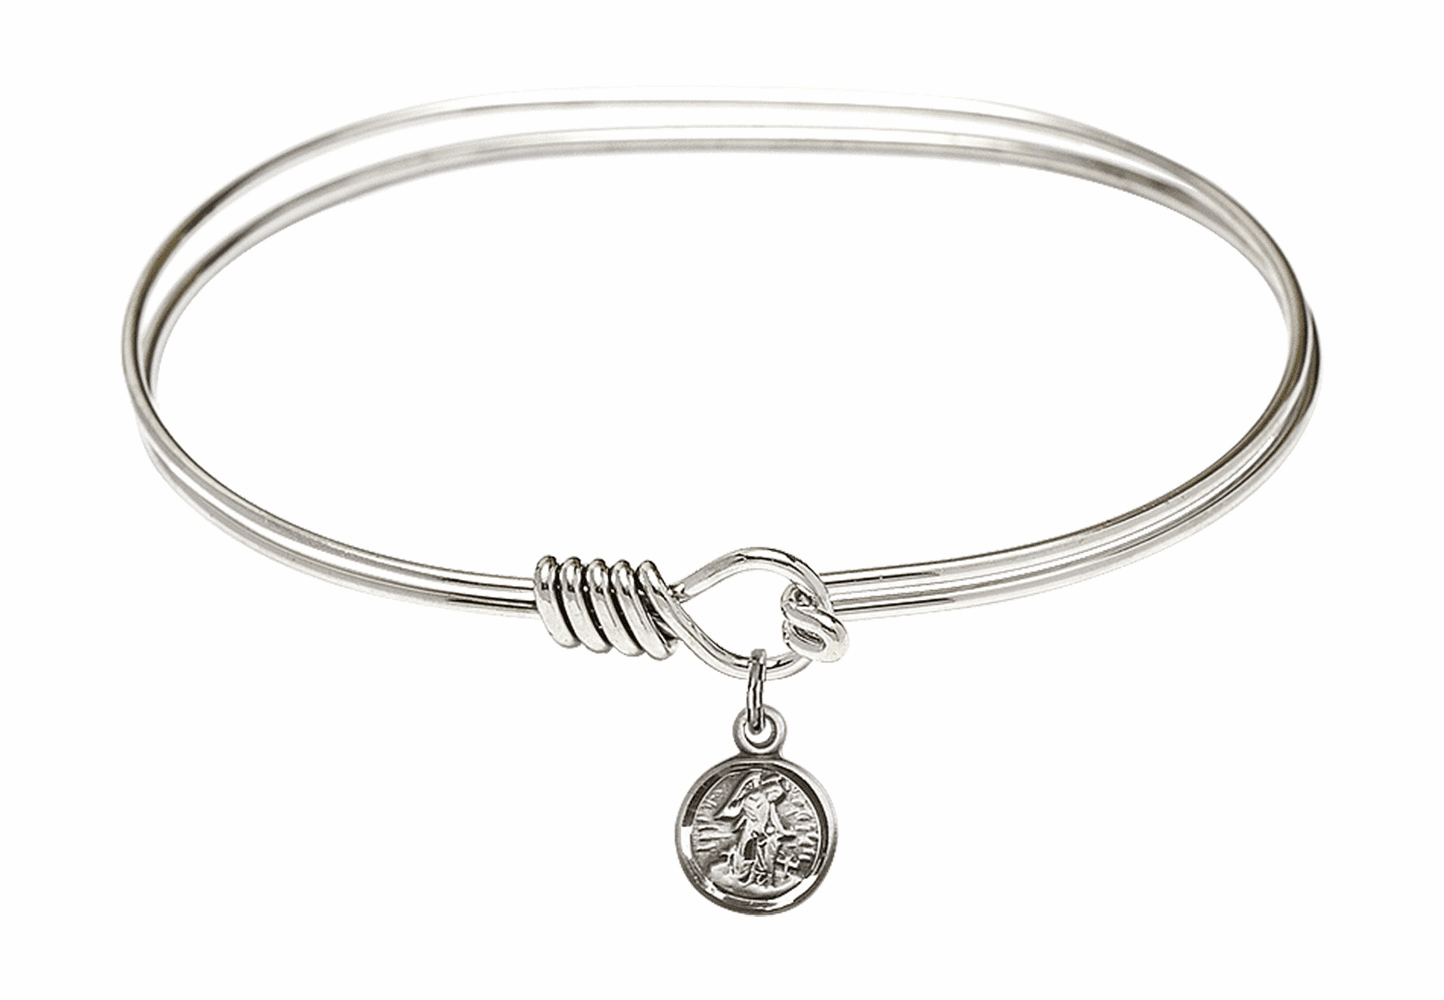 Round Eye Hook Bangle Bracelet w/Small Guardian Angel Sterling Silver Charm by Bliss Mfg